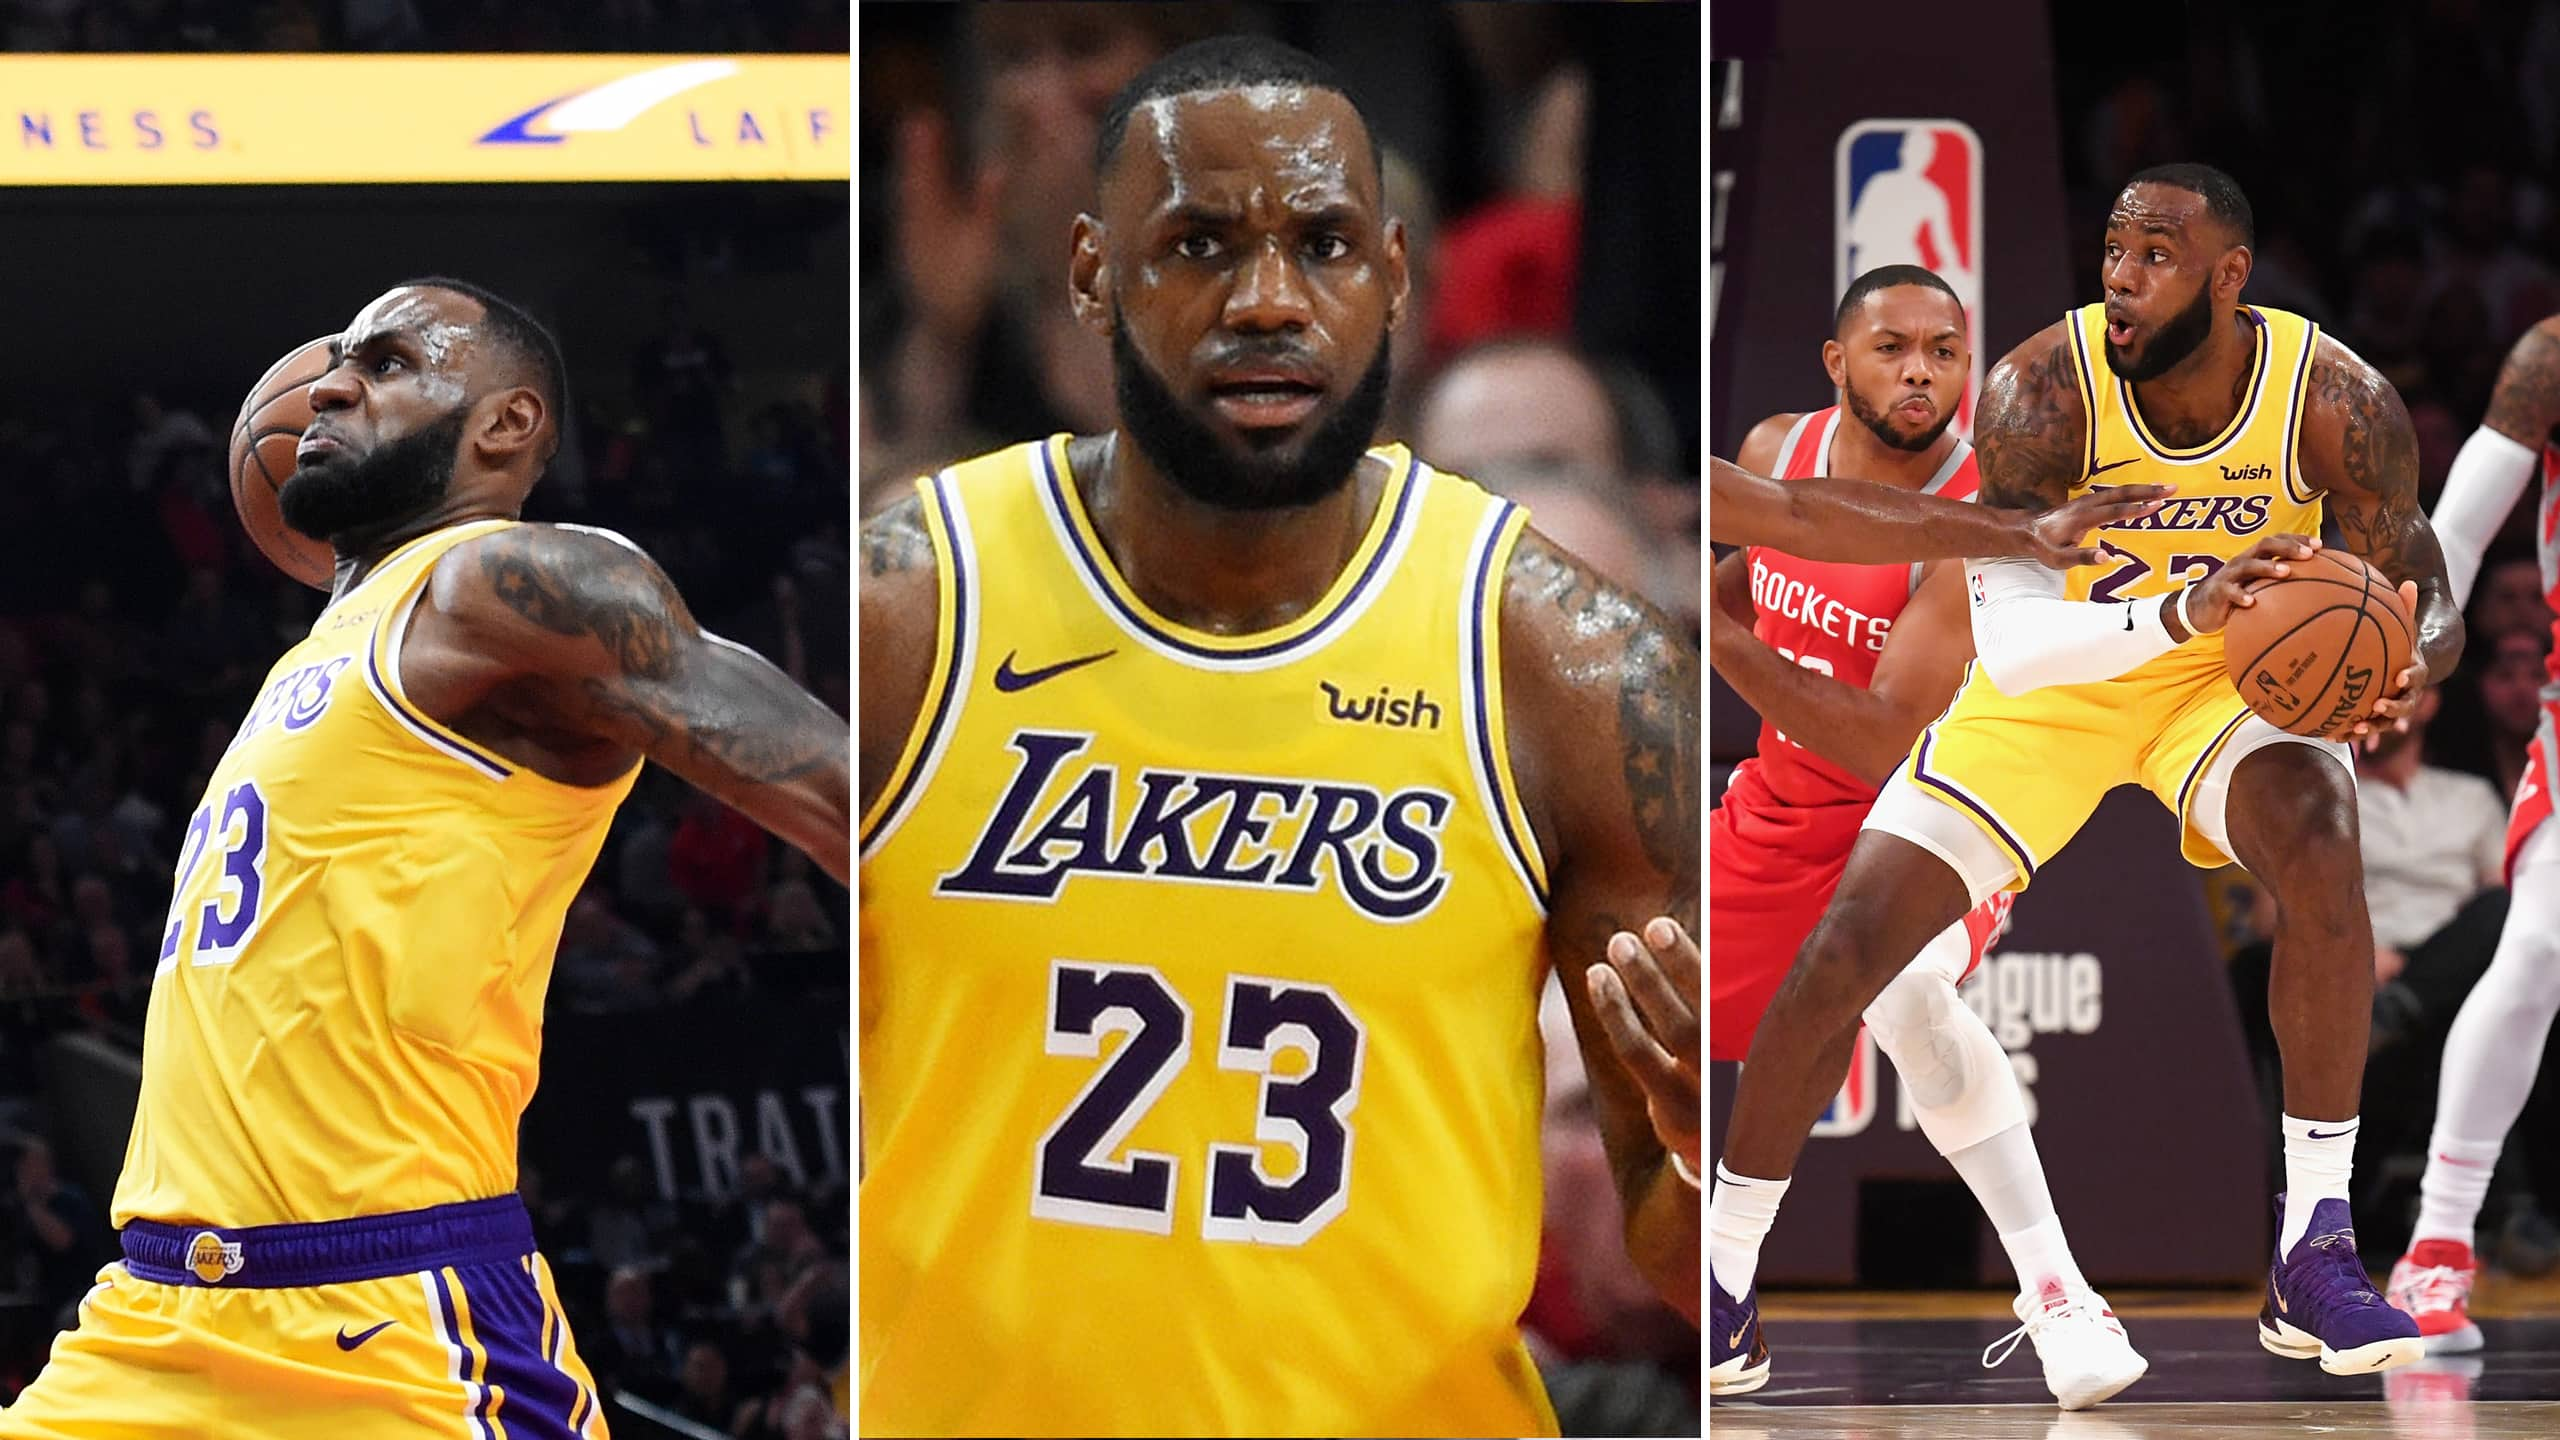 44f87fea96d LeBron James played his first game at the Staples Centre as a Laker on  Saturday